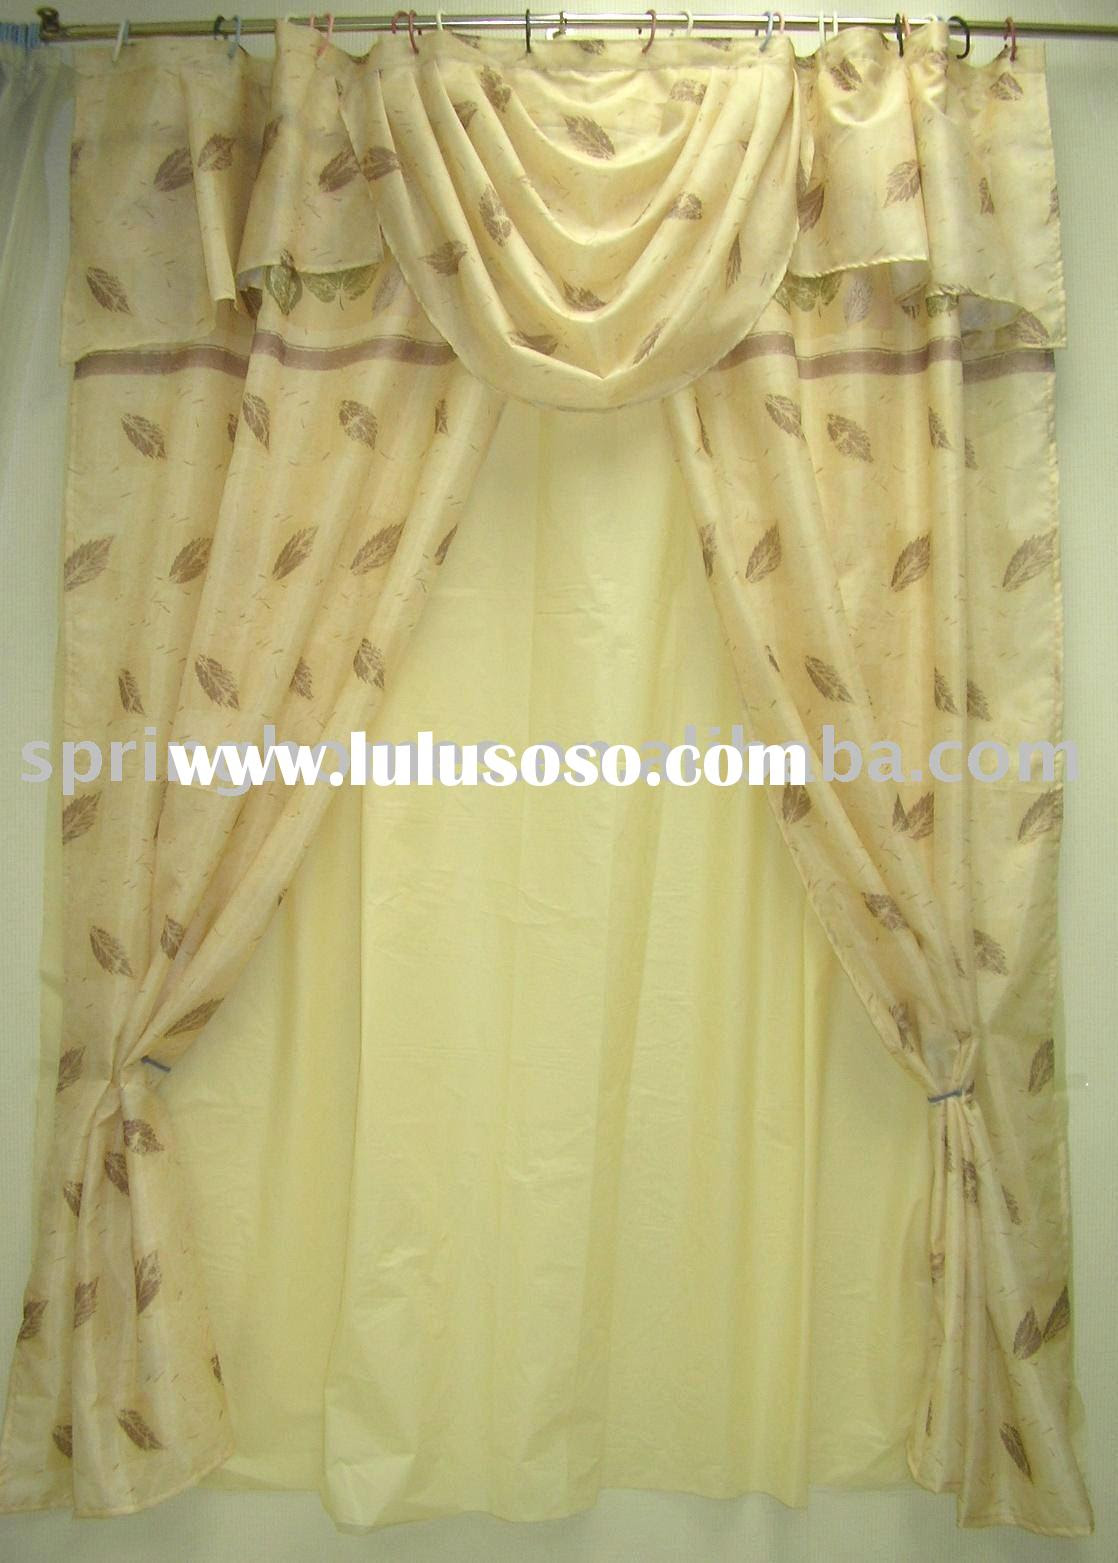 double swag shower curtain with valance for sale - Price,China